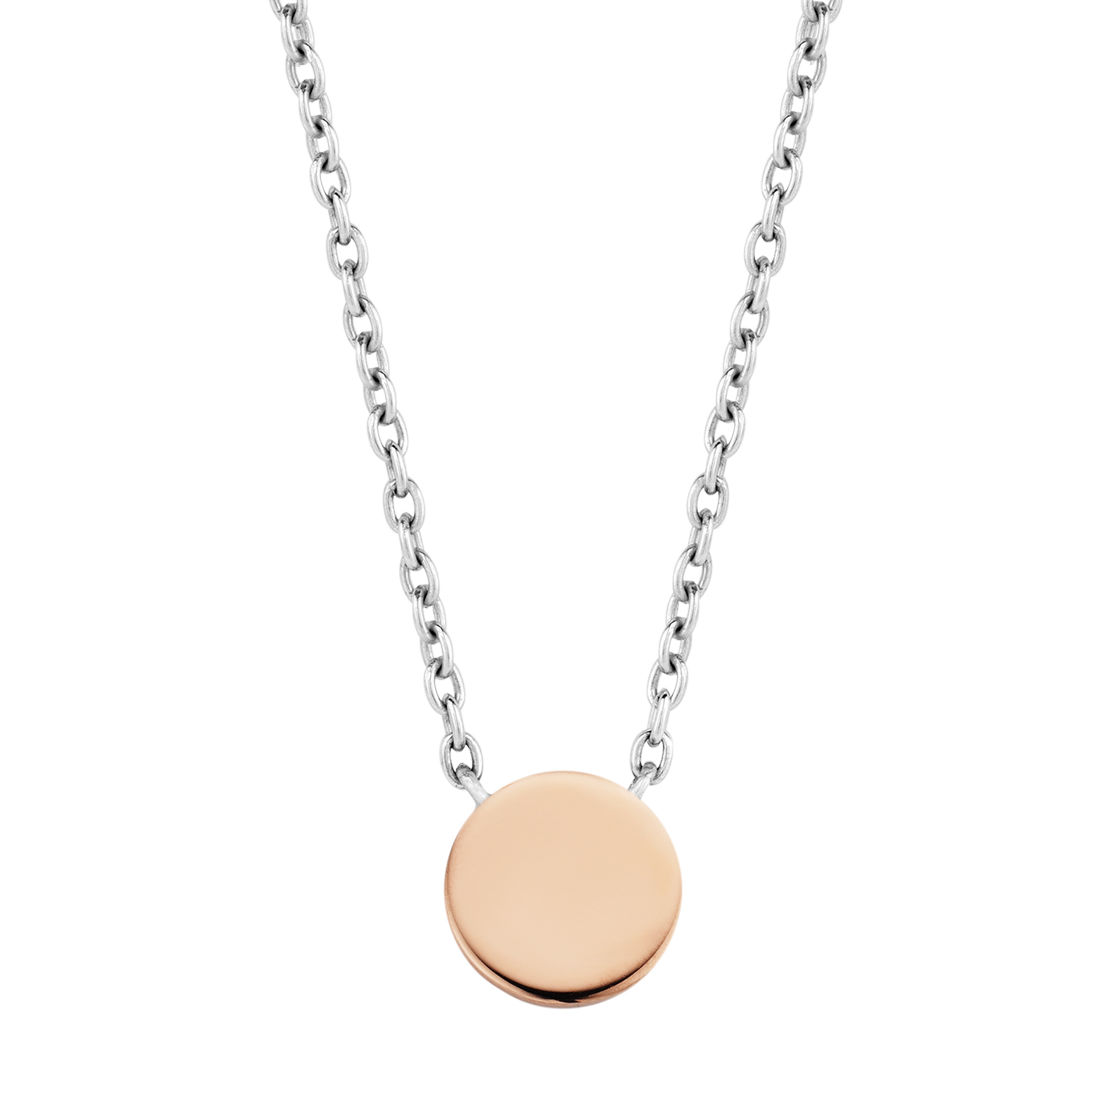 TI SENTO - Milano Necklace 3892SR